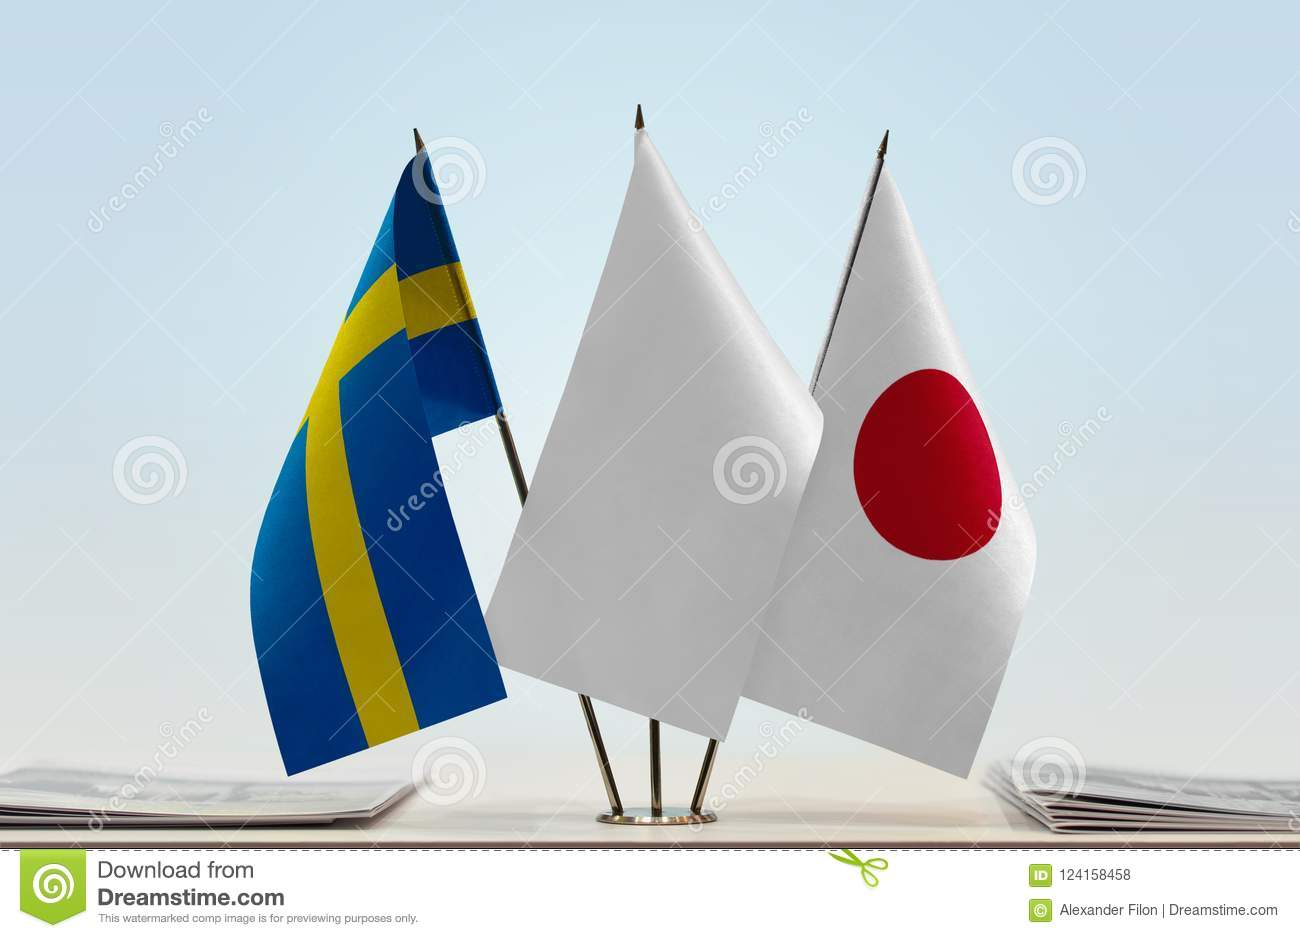 Flags of Sweden and Japan